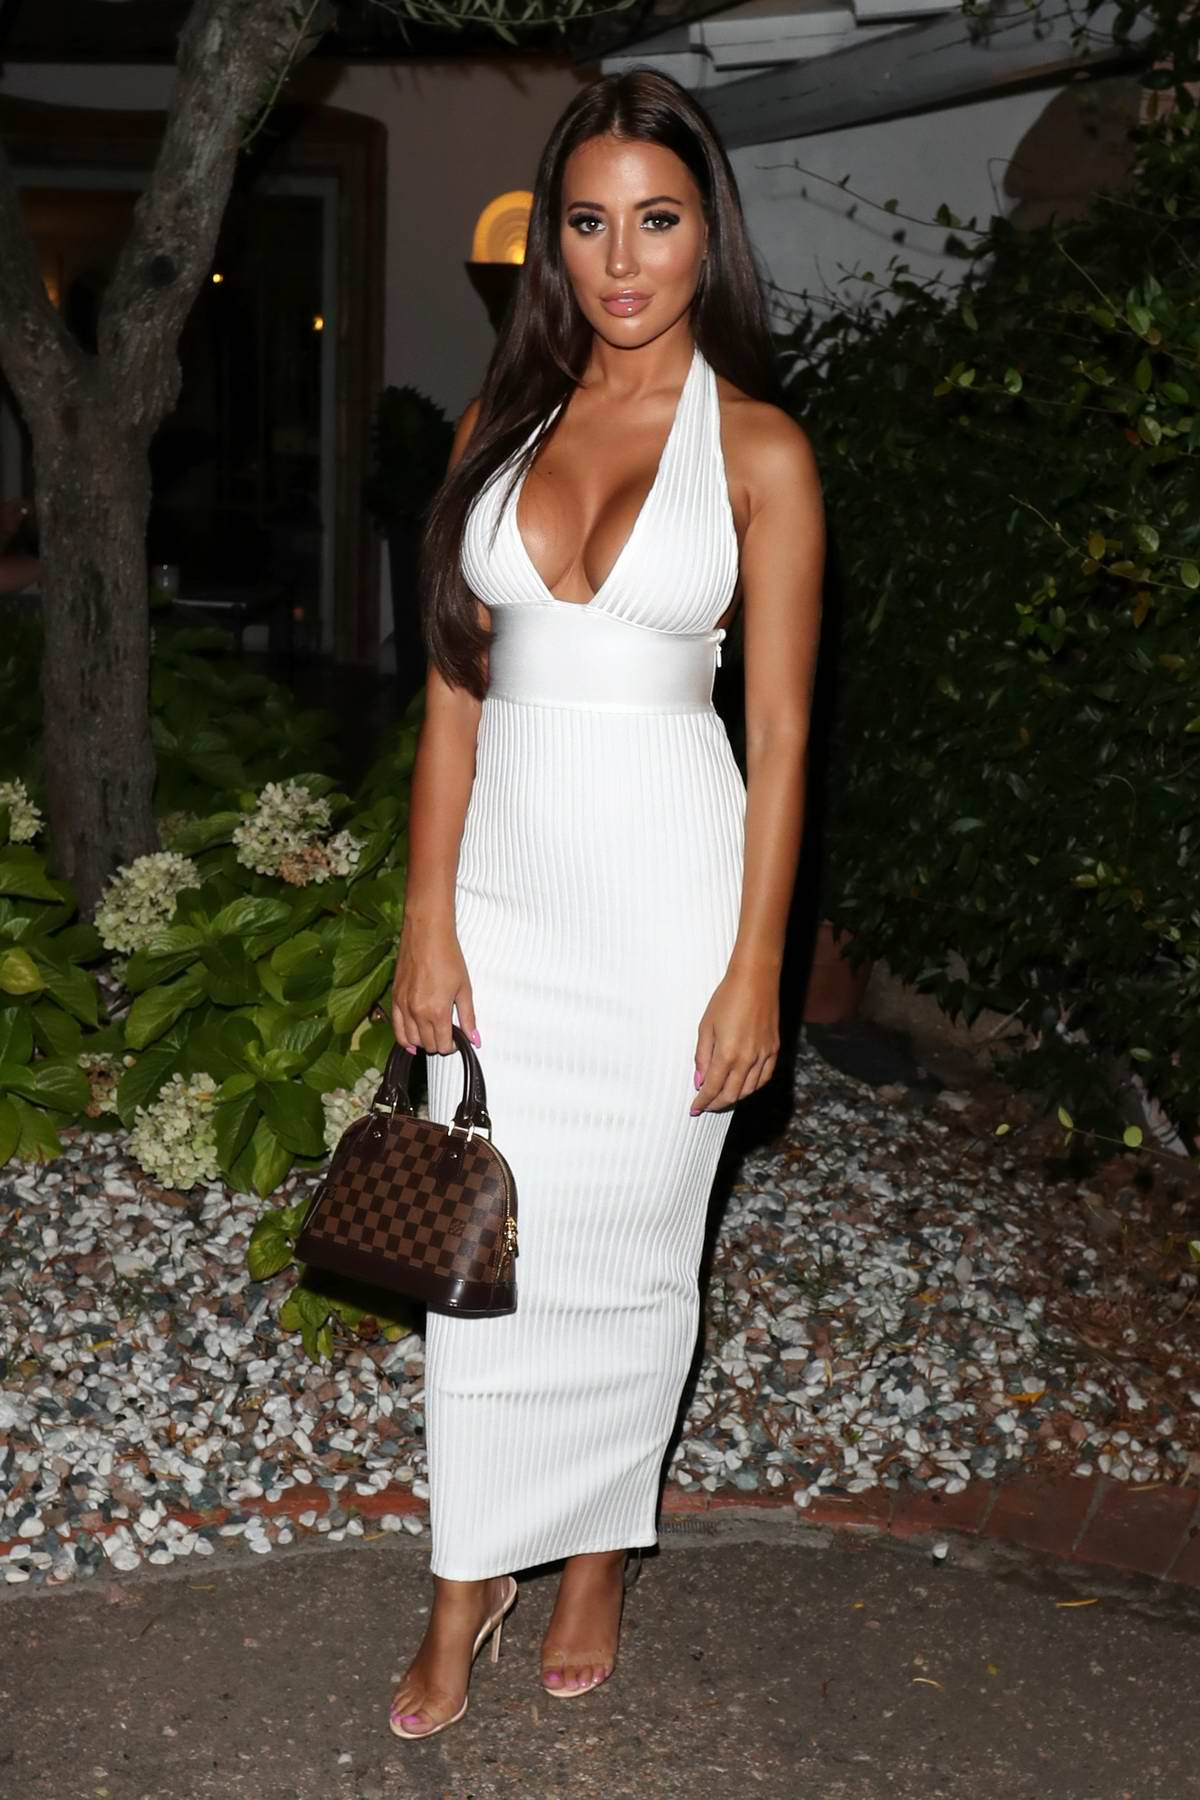 Yazmin Oukhellou attends 'The Only Way Is Essex' cast party in Sardinia, Italy